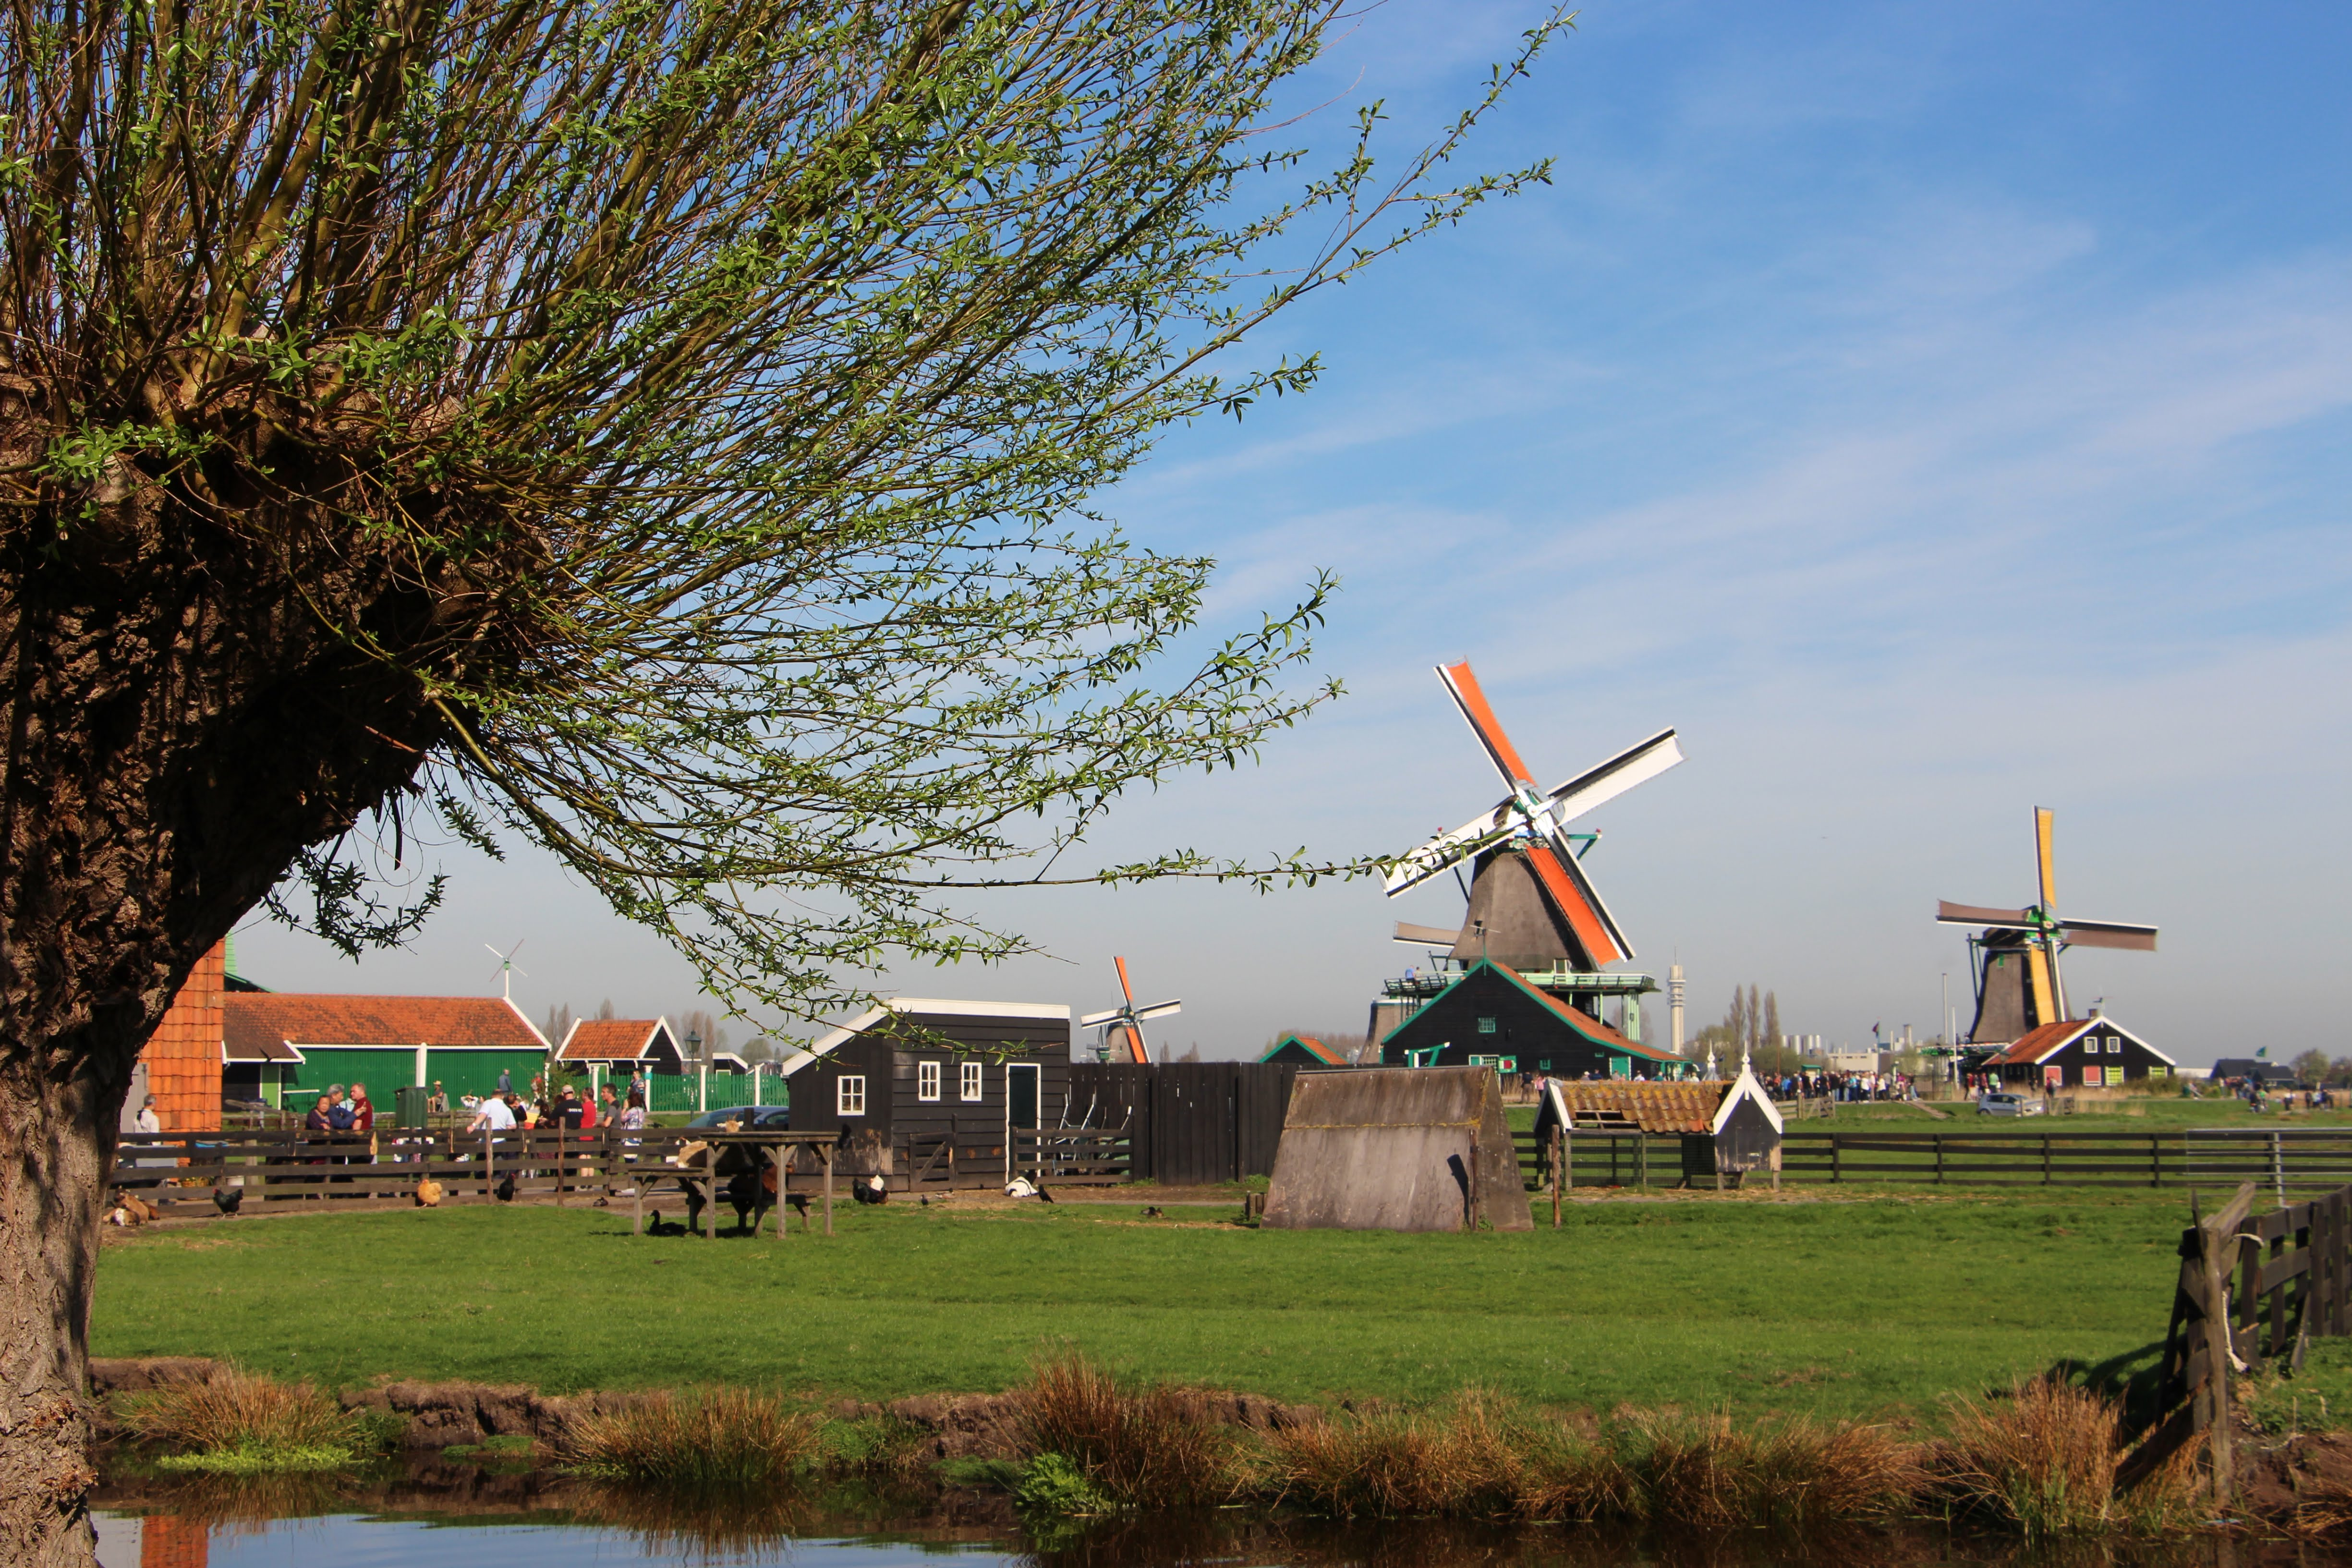 The colorful windmills of Zaanse Schans